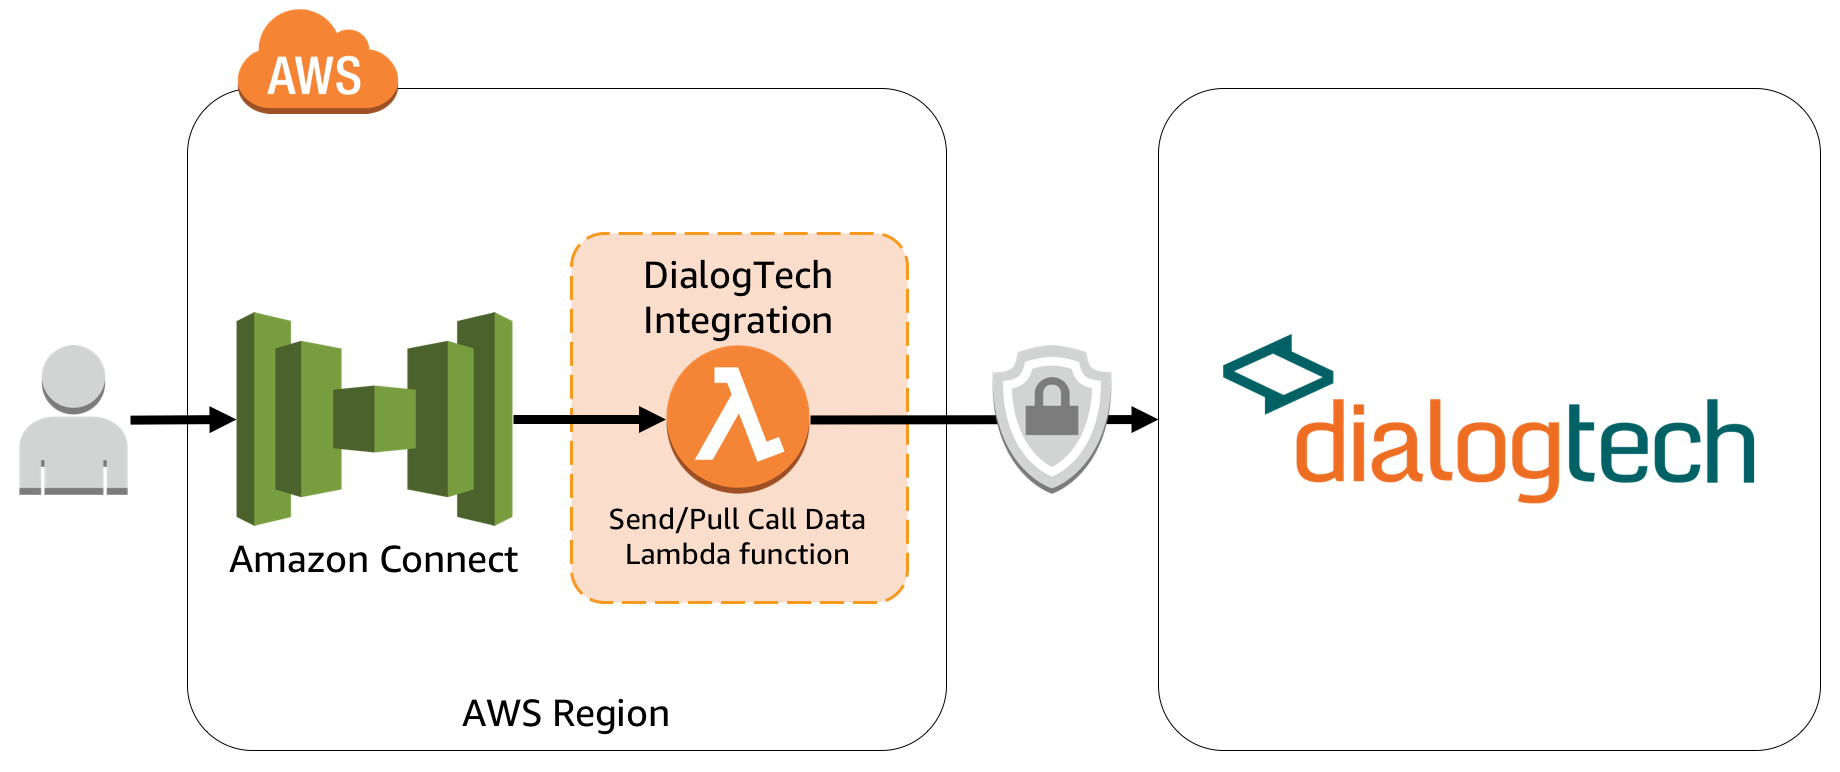 Architecture for DialogTech integration